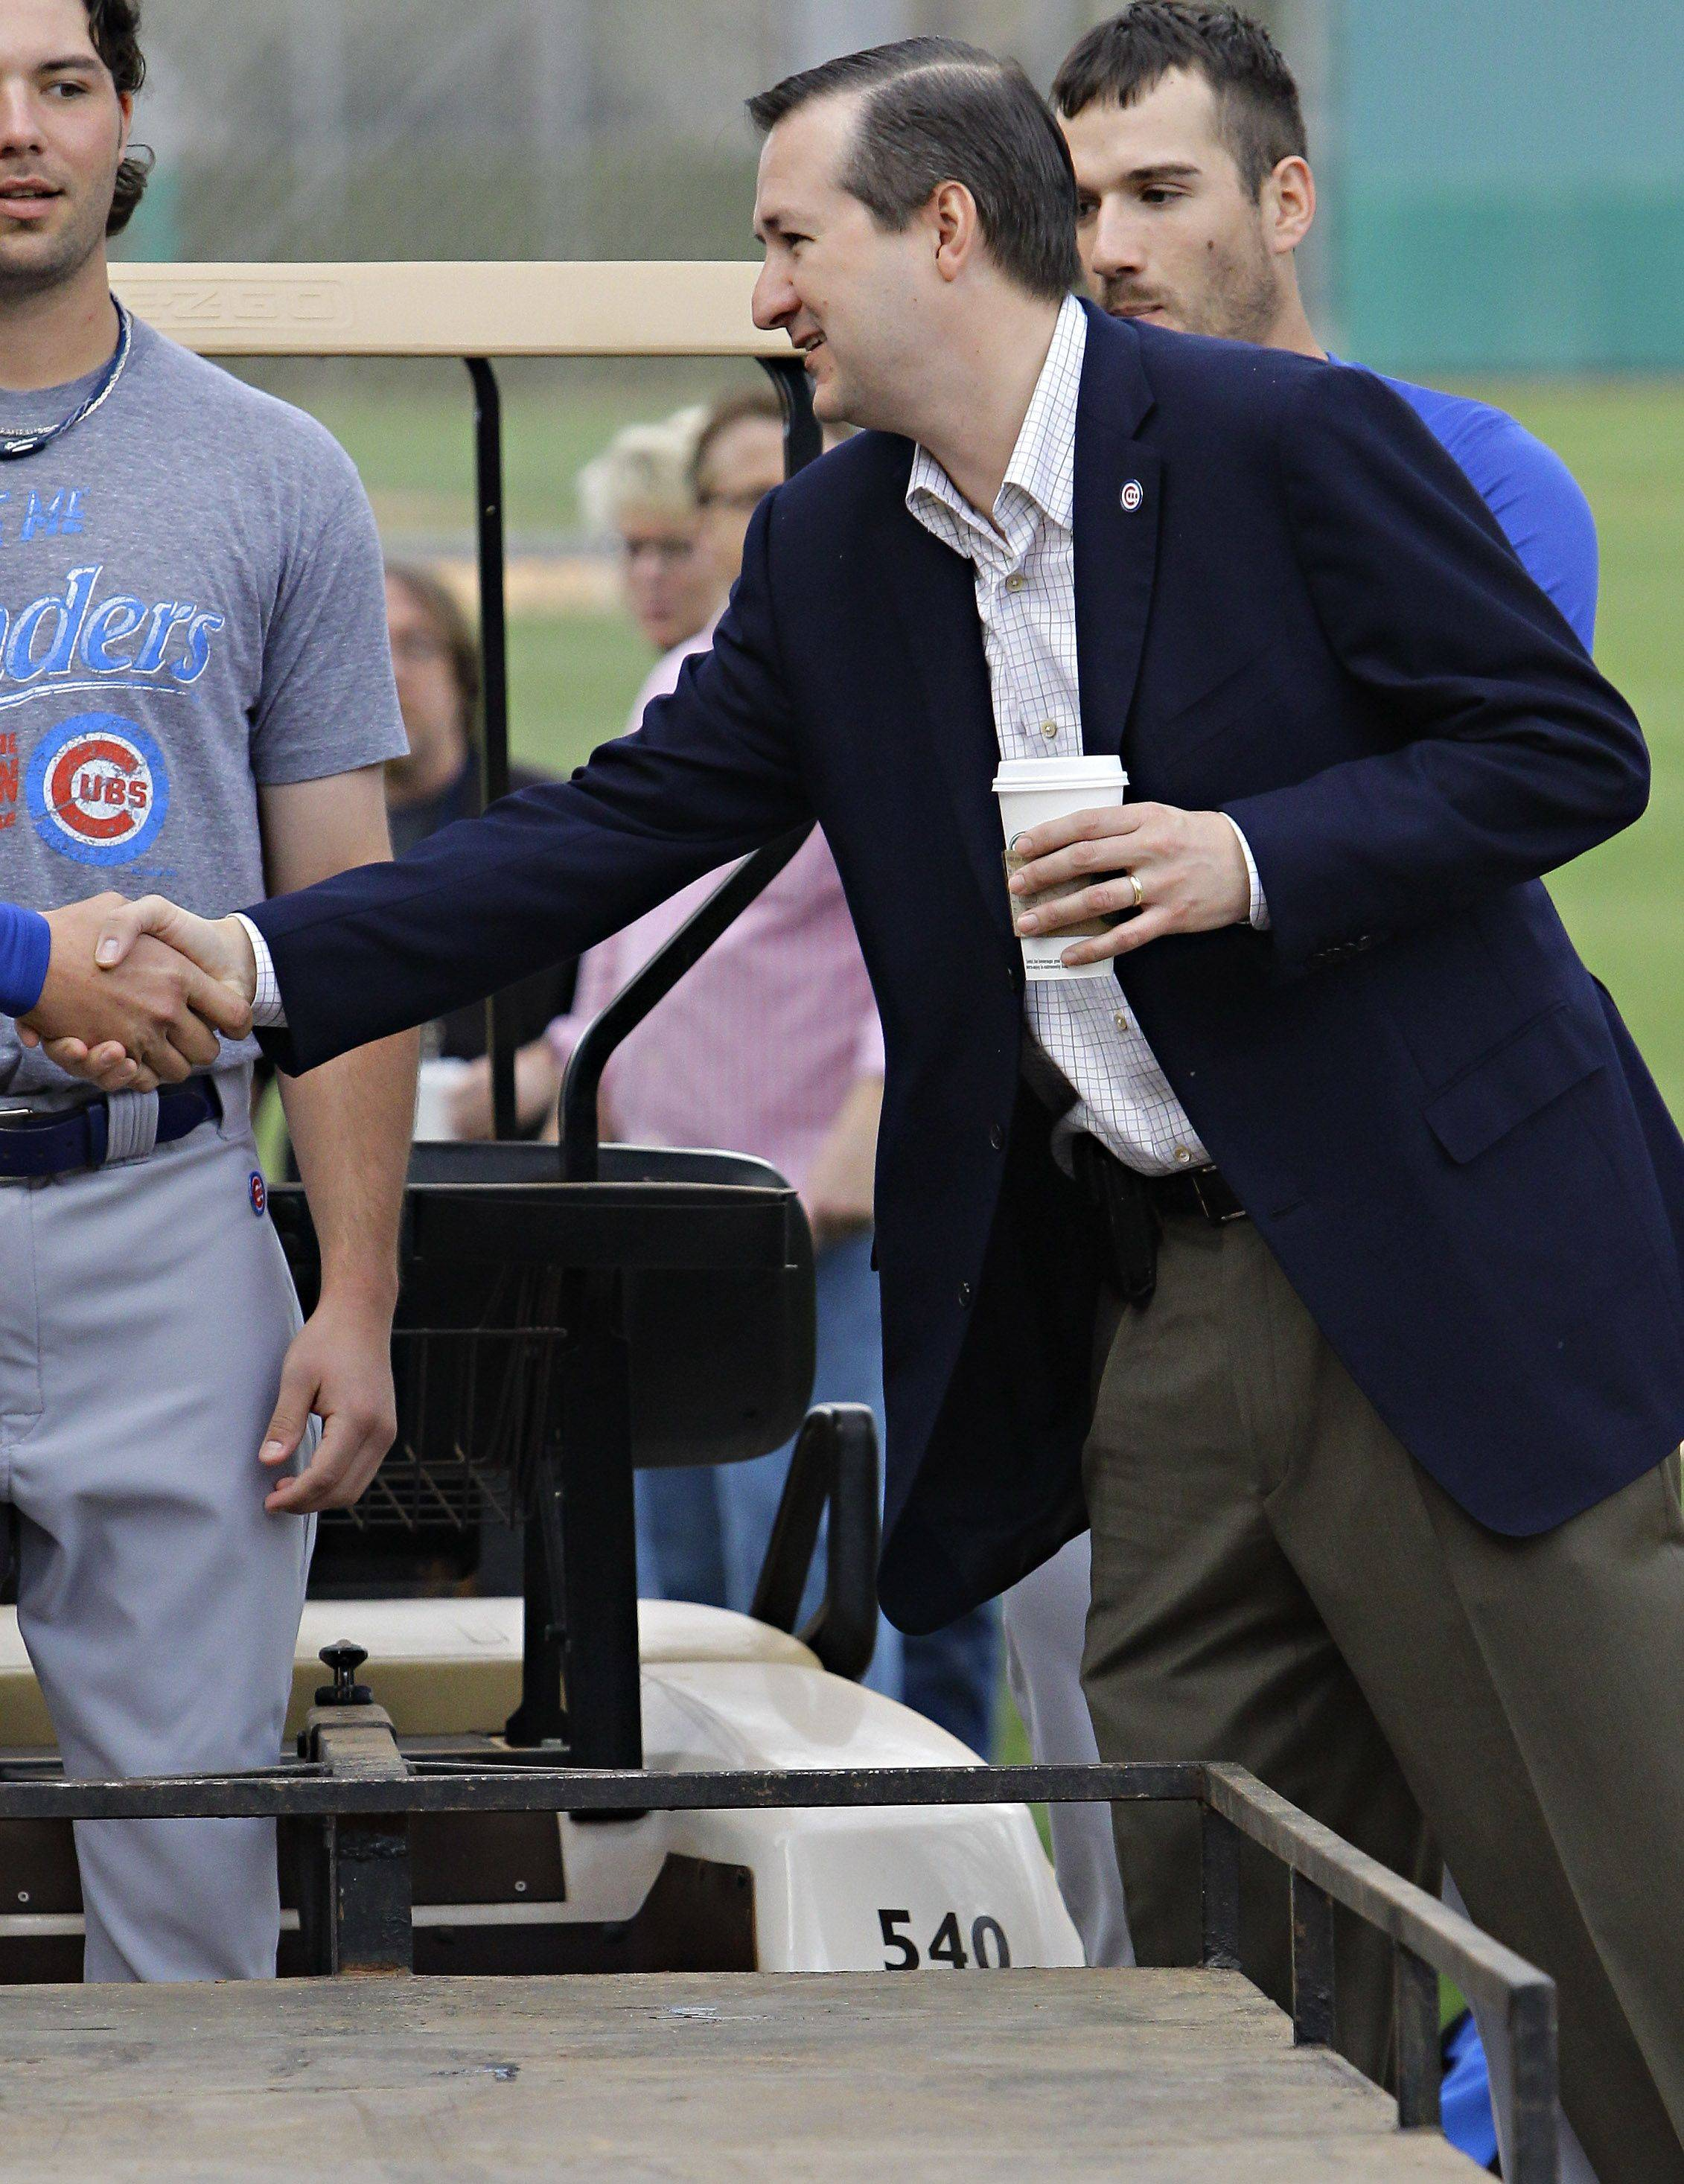 Chicago Cubs owner Tom Ricketts greets his players Saturday, Feb. 19, 2011 at the Cubs' baseball spring training facility in Mesa, Ariz.